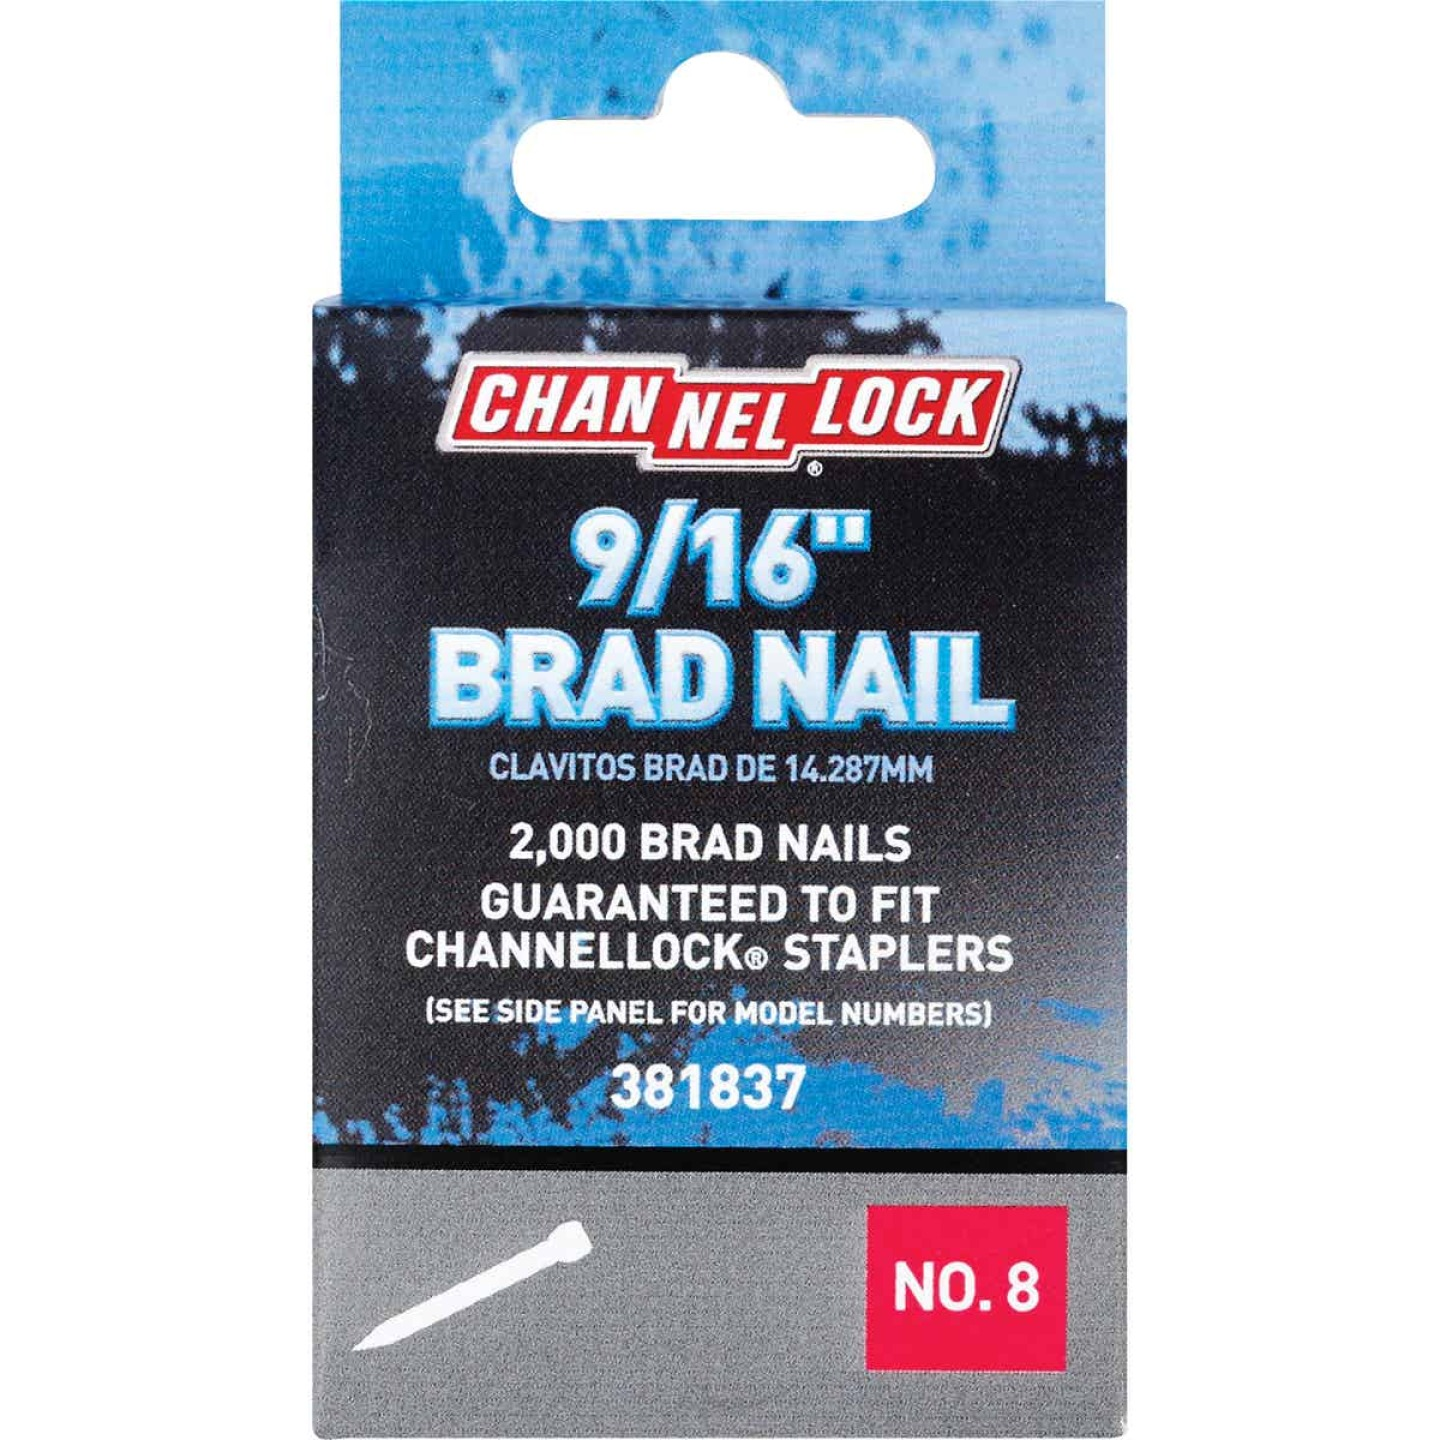 Channellock18-Gauge Steel Brad Nail, 9/16 In. (2000-Pack) Image 1